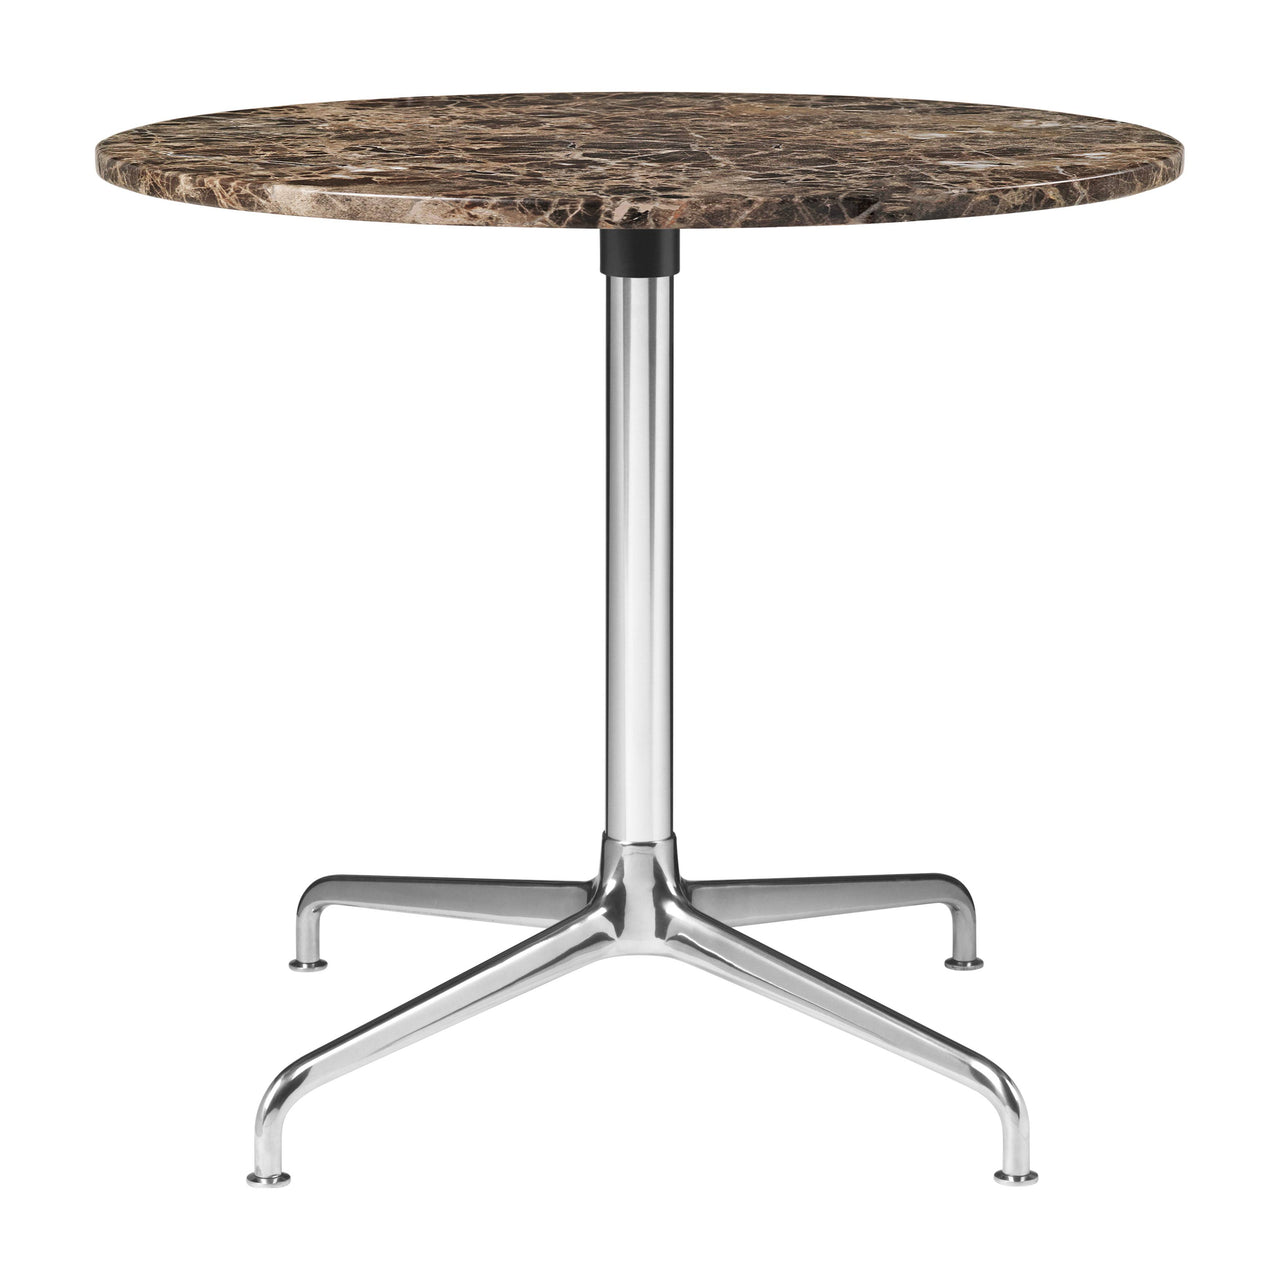 Beetle Lounge Table: Round + Small + Brown Emperador Marble + Polished Aluminum Base